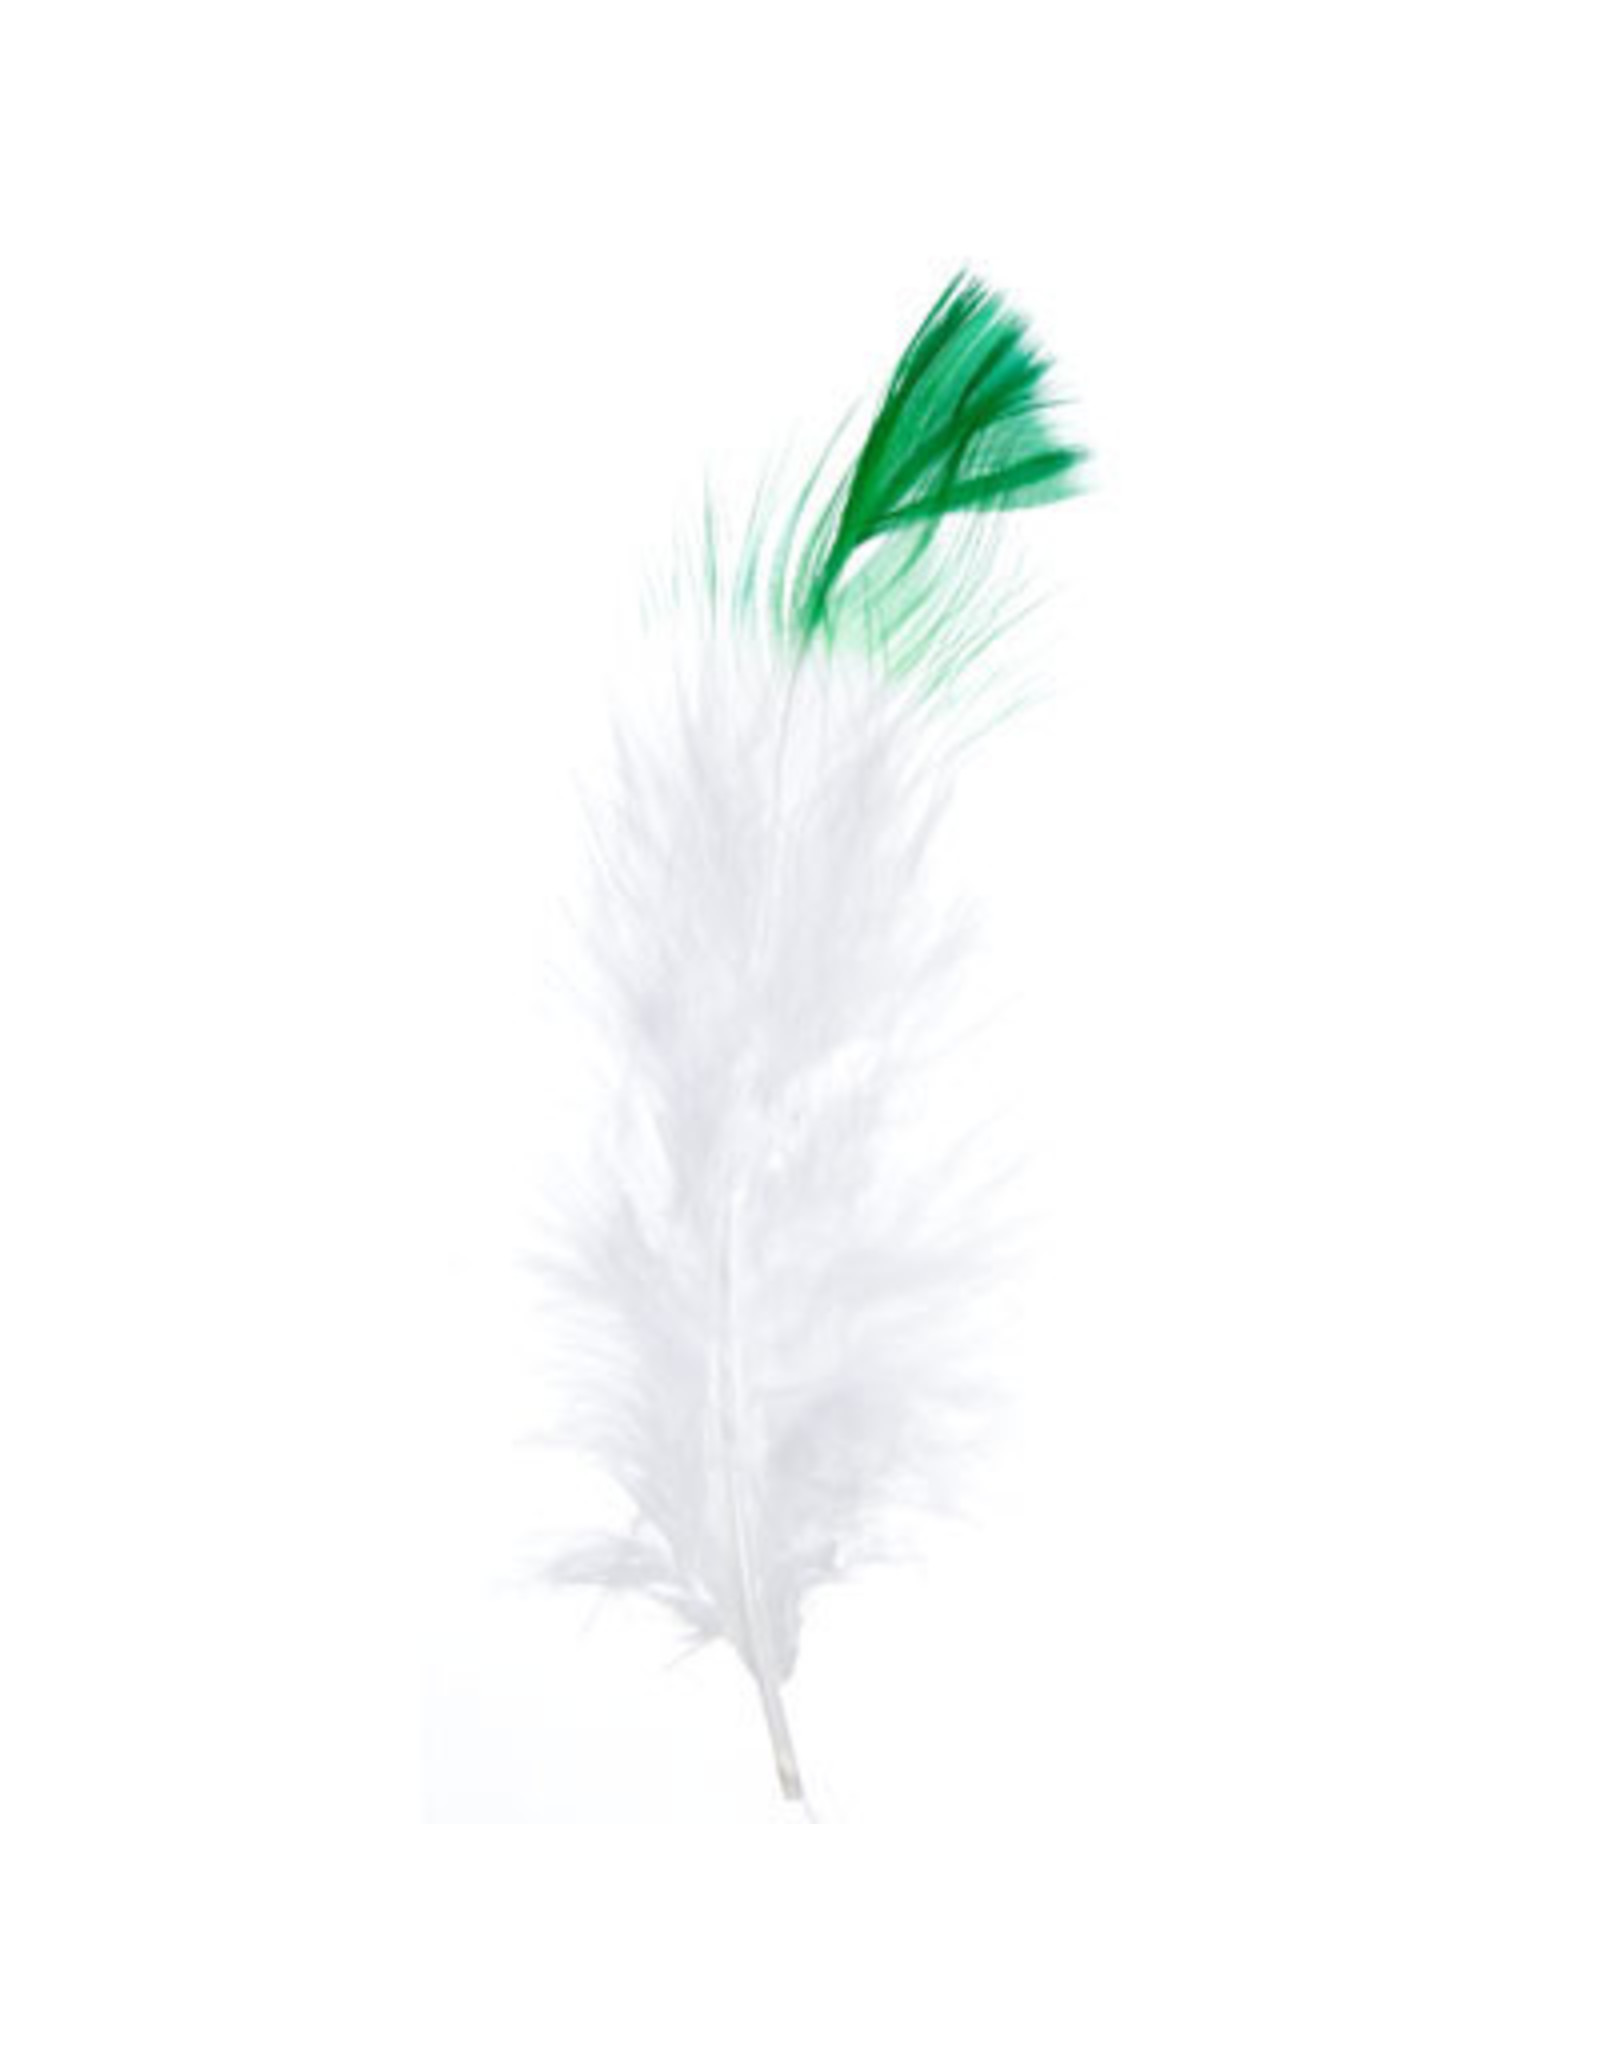 Marabou Feathers 4-6in White Green Tip  6g